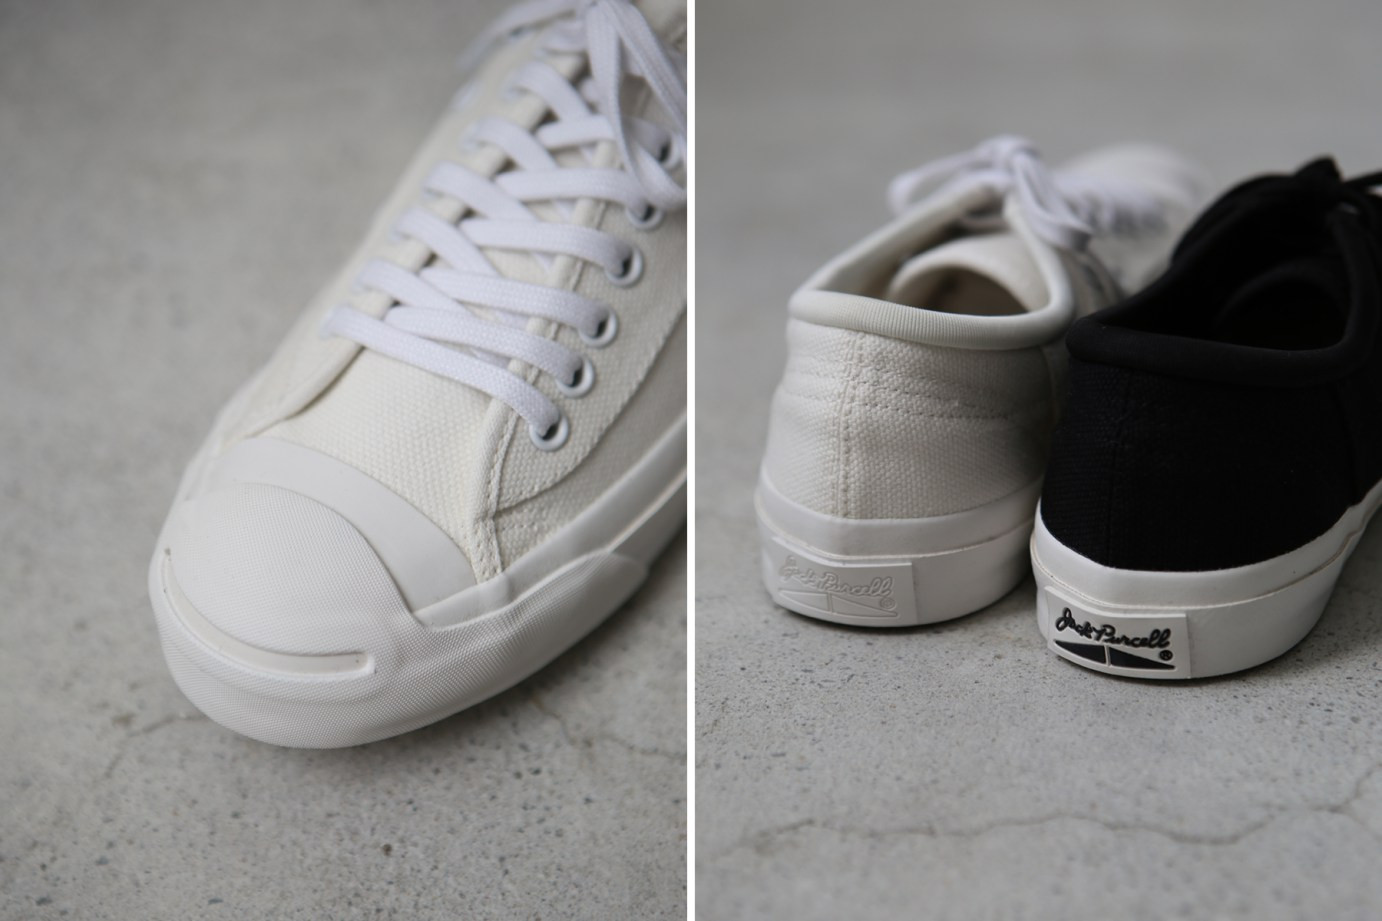 United Arrows Converse Jack Purcell